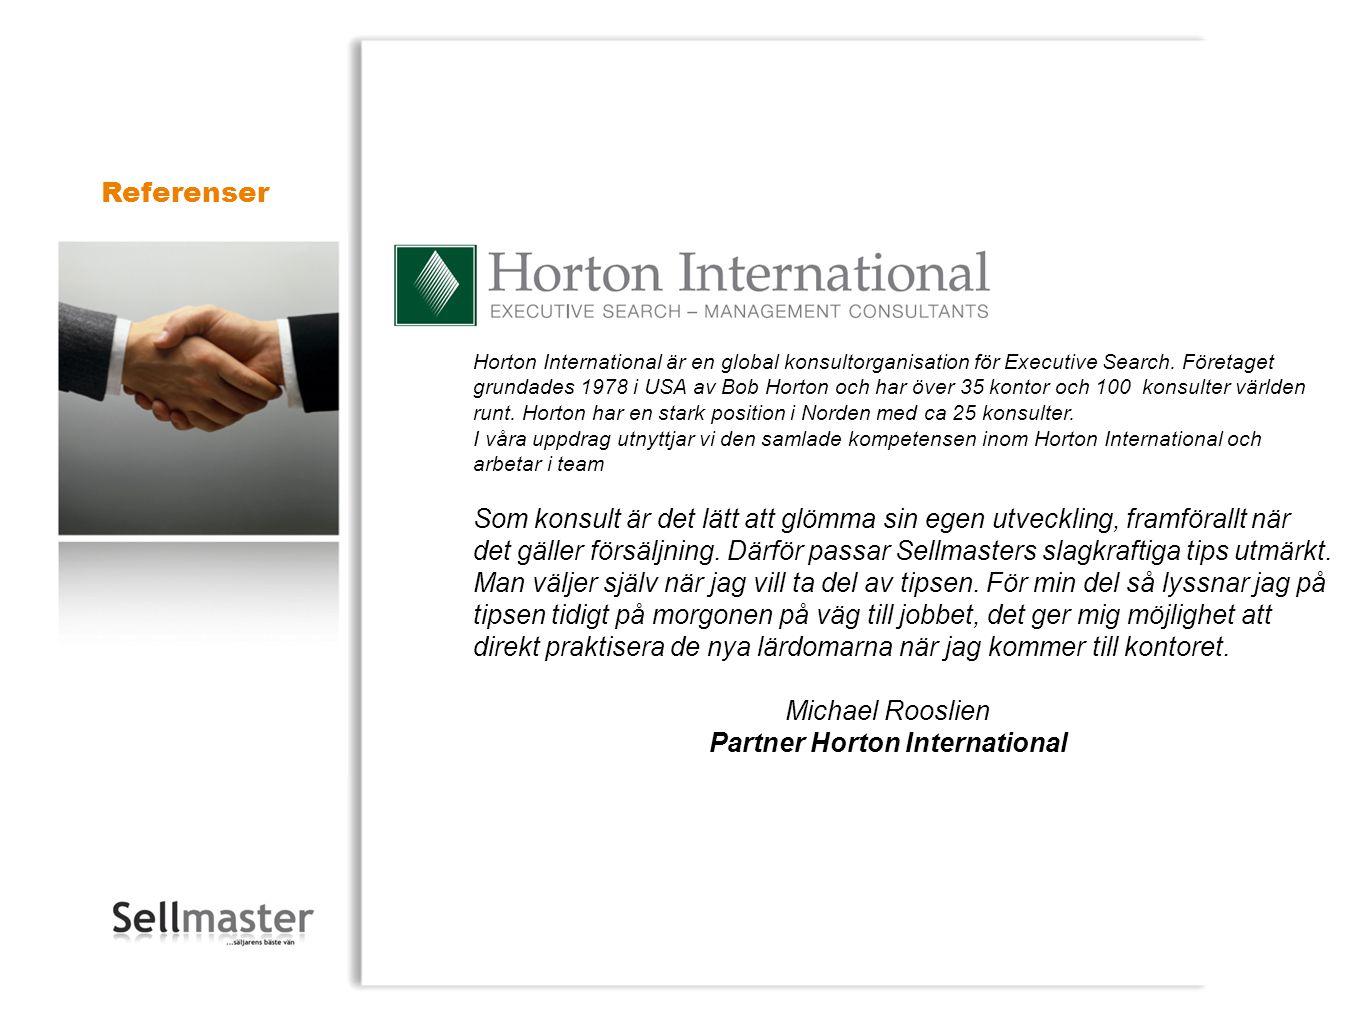 Partner Horton International